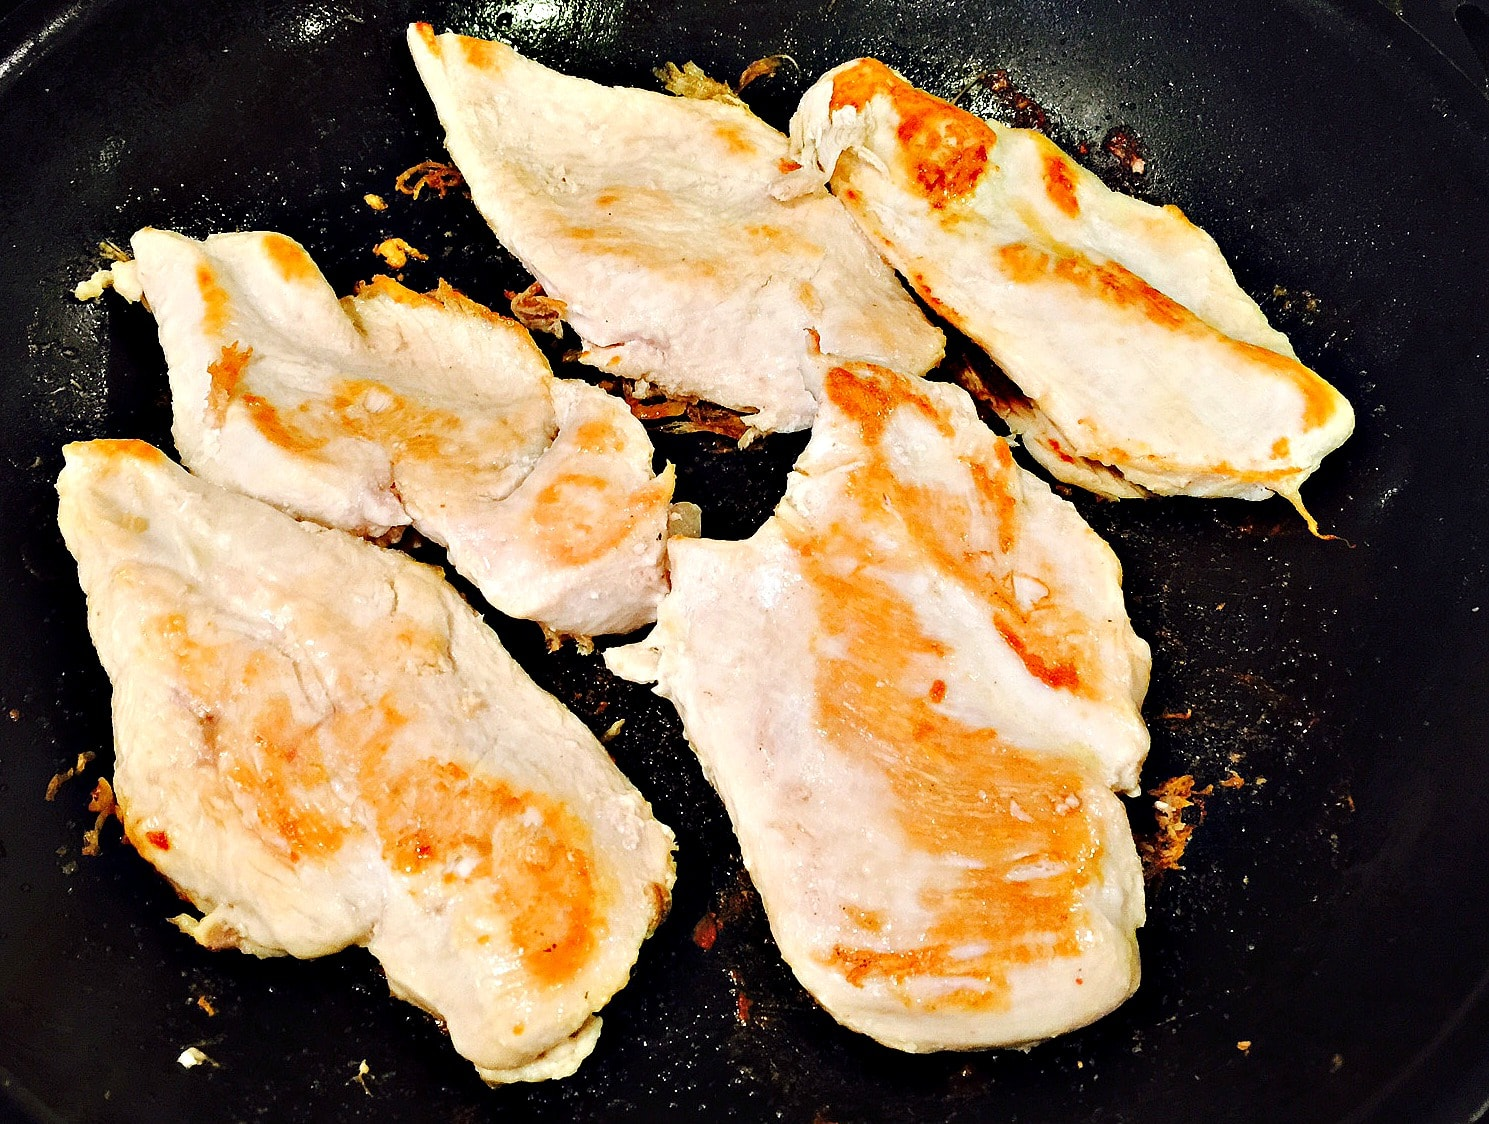 boneless, skinless chicken breasts, cooked.